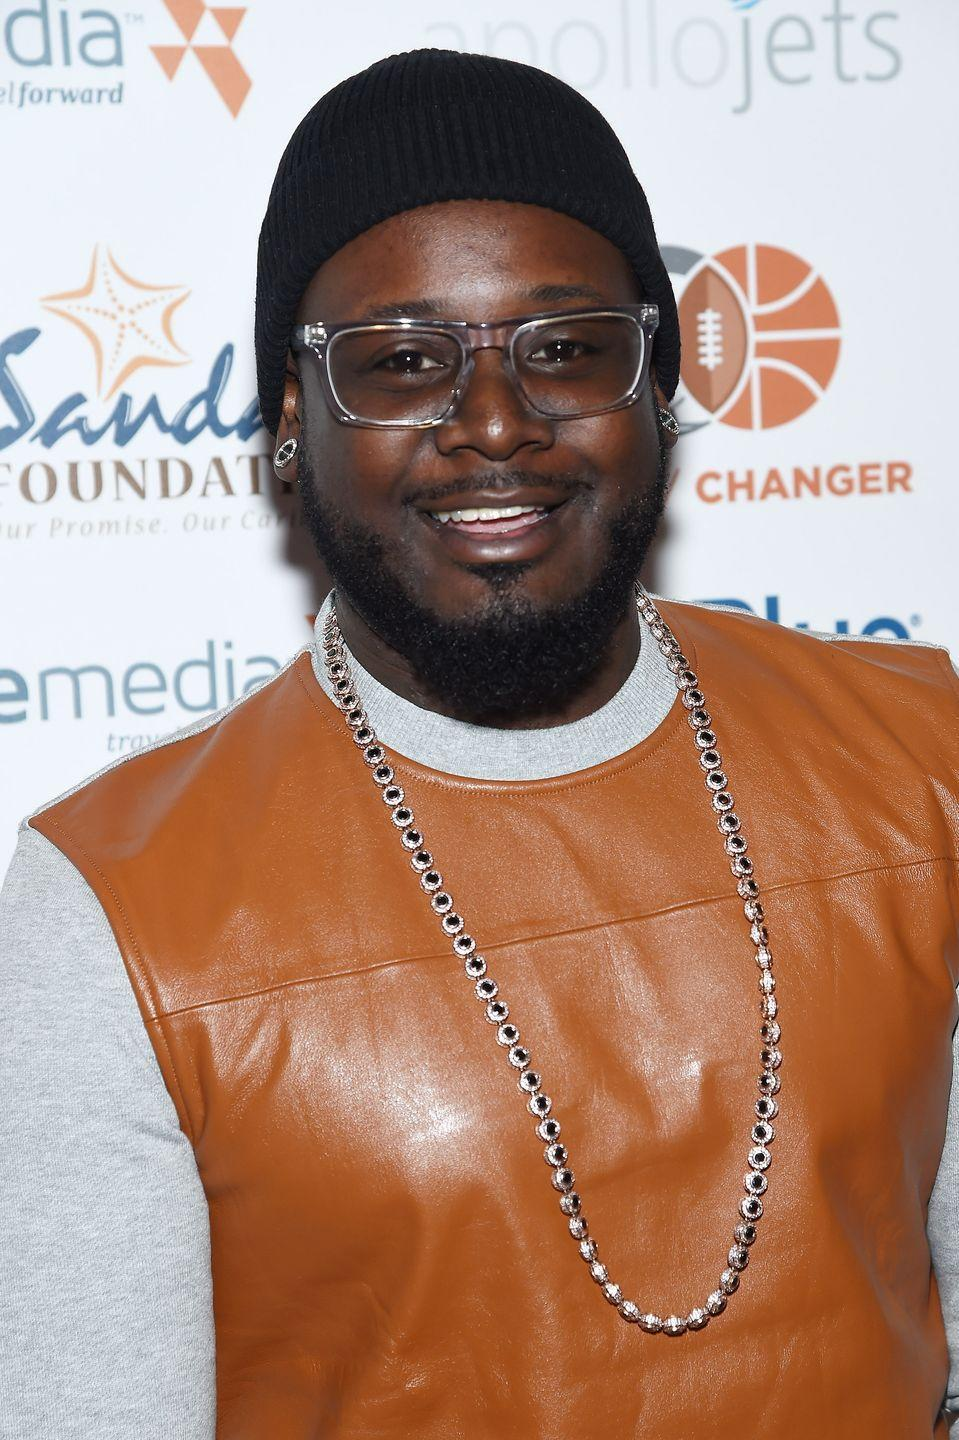 """<p>While T-Pain didn't <em>technically </em>work at McDonald's, he revealed to <em><a href=""""https://www.today.com/popculture/t-pain-almost-ended-working-mcdonald-s-wbna19114035#.VDJGjPldU78"""" rel=""""nofollow noopener"""" target=""""_blank"""" data-ylk=""""slk:Today"""" class=""""link rapid-noclick-resp"""">Today</a> </em>he almost did: """"The most horrible time was the day that Akon called me. He called me right when I went to get my application from McDonald's.""""</p>"""